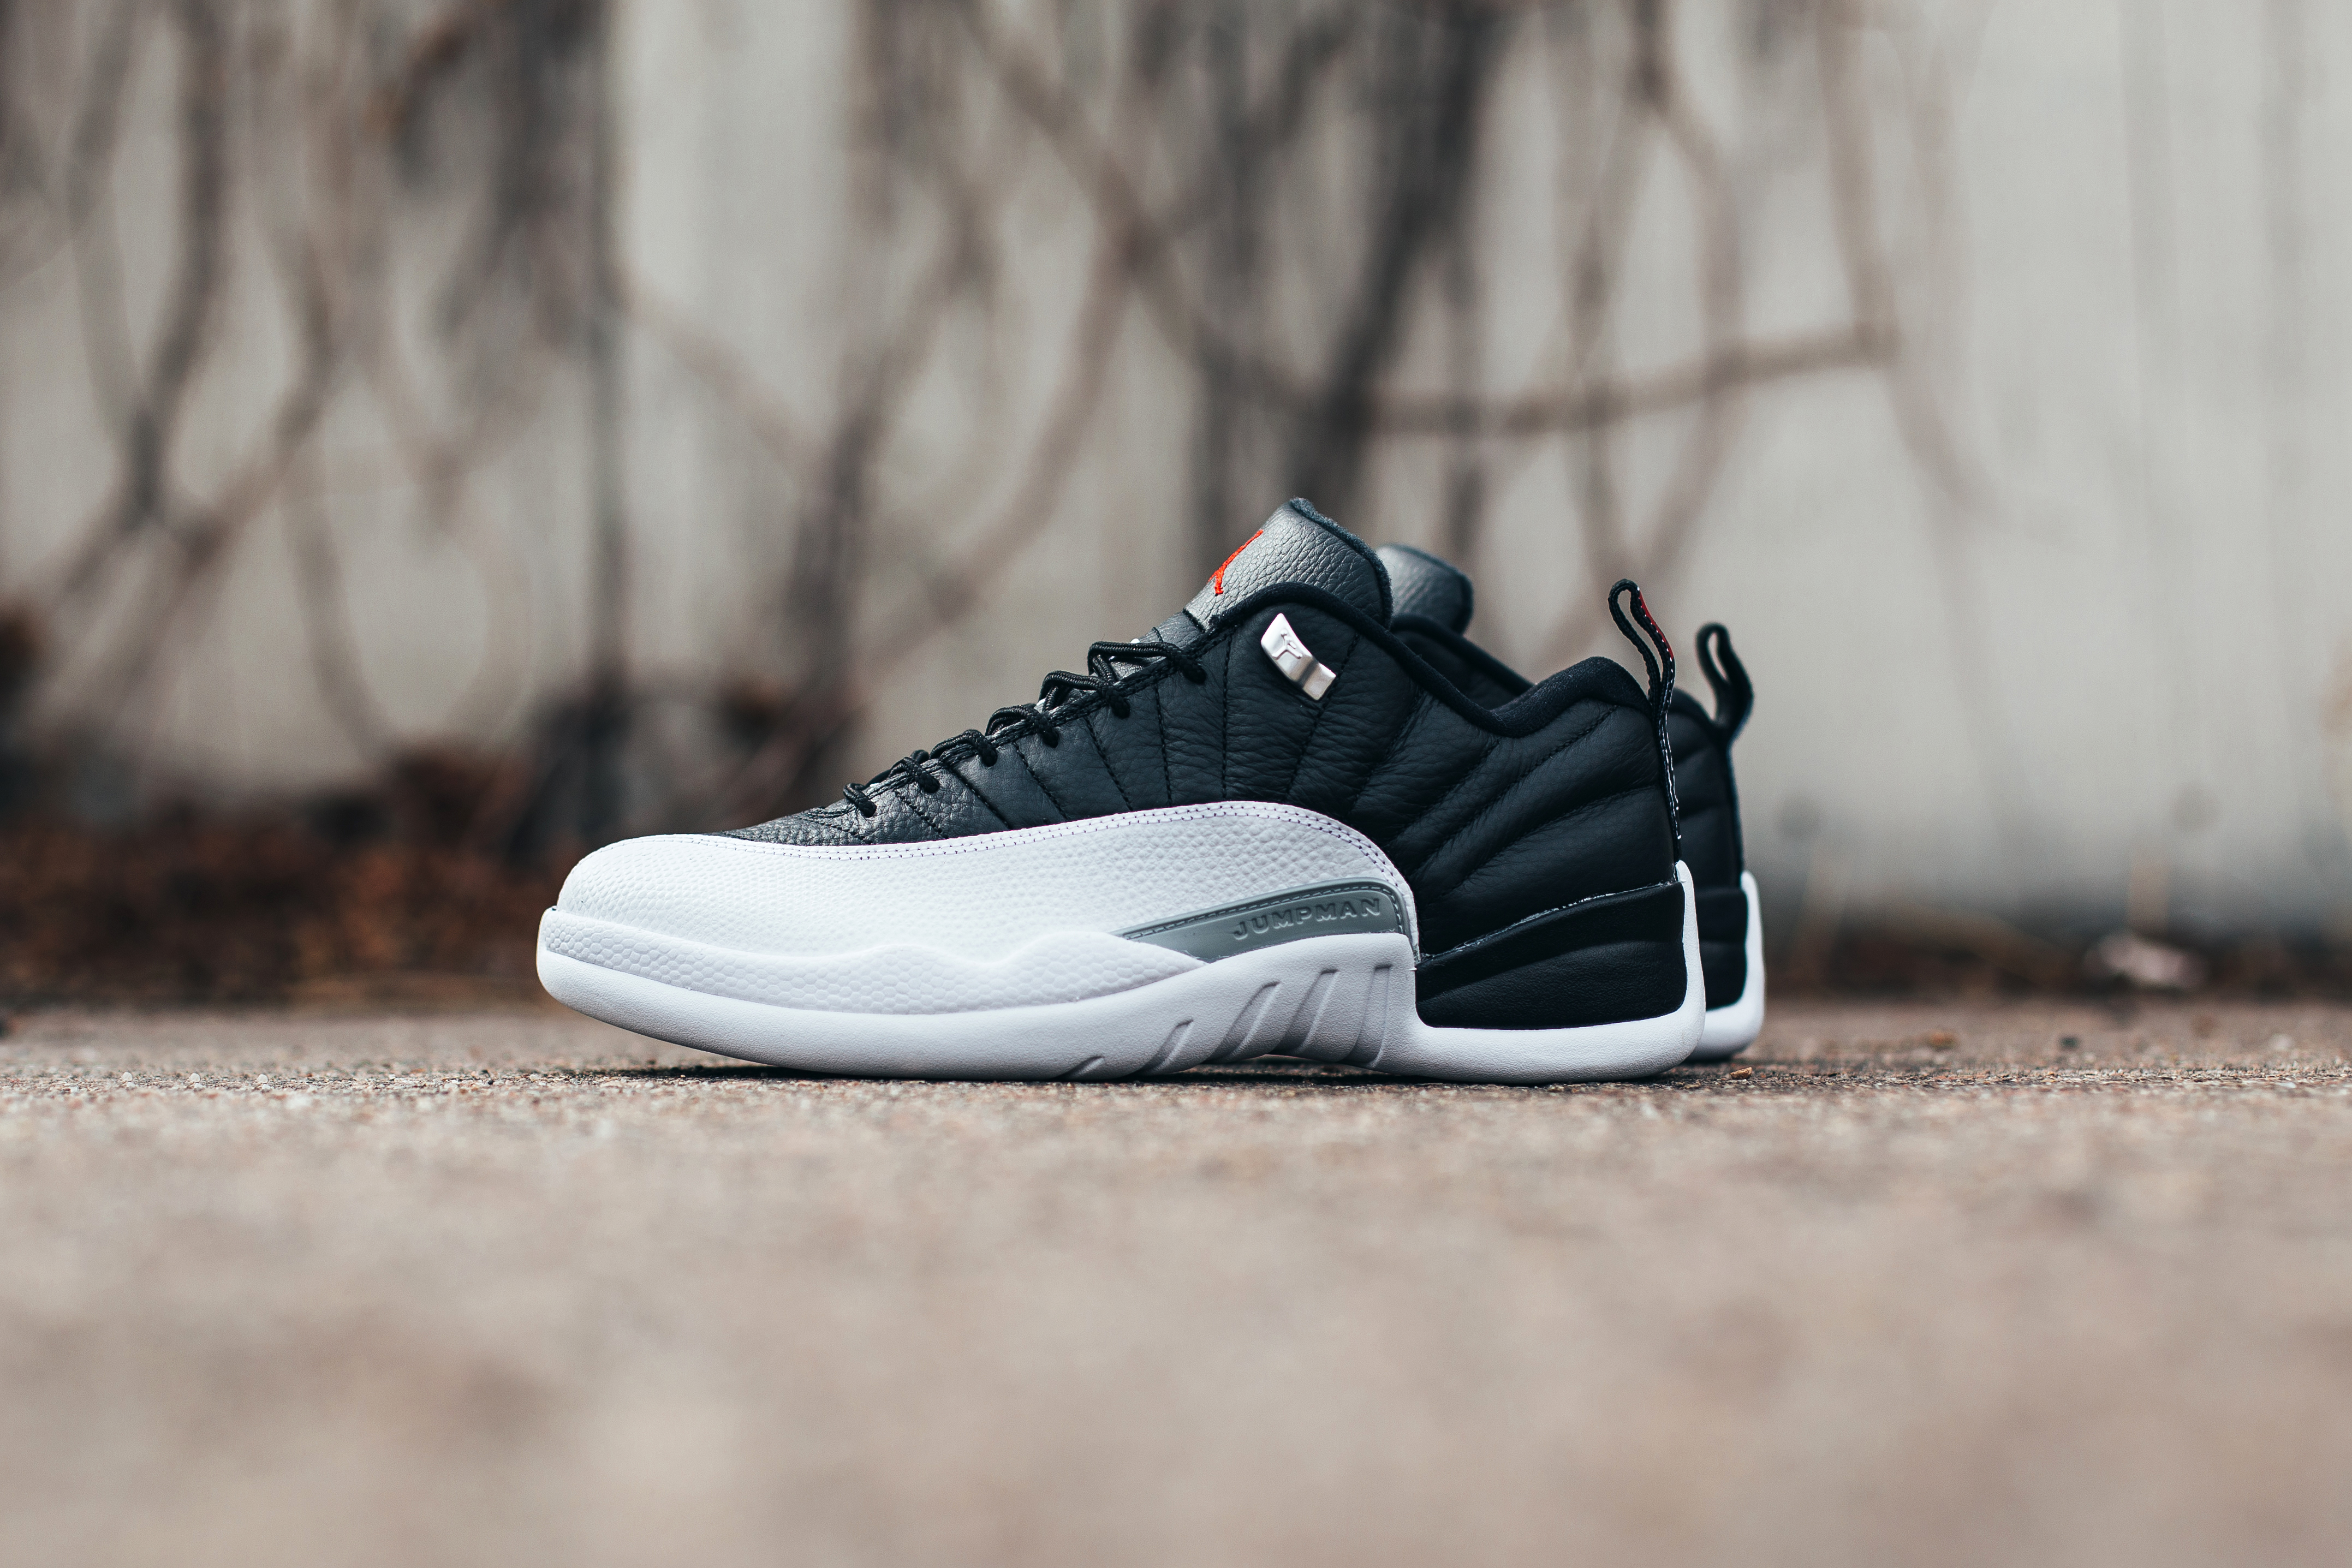 """d3c3d7e22bd5 One of Michael Jordan s most iconic sneakers and colorways is coming back  on February 25th. Air Jordan 12 Low """"Playoffs"""" captures the classic black  and ..."""